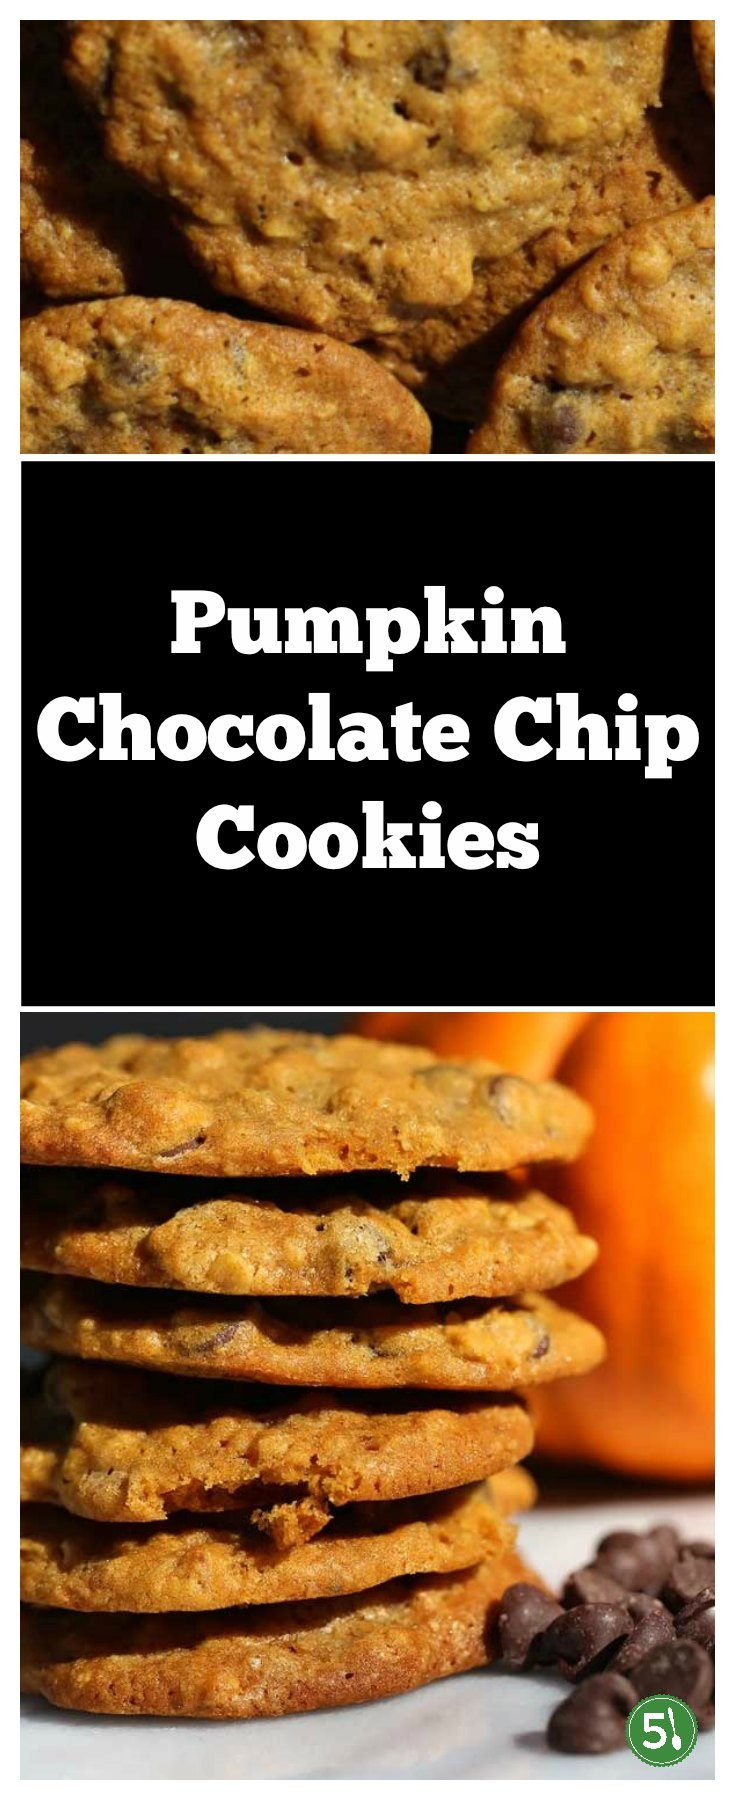 Soft pumpkin chocolate chip cookies that are easy to make and are absolutely DELICIOUS.  This is the best pumpkin chocolate chip cookies recipe I've found.